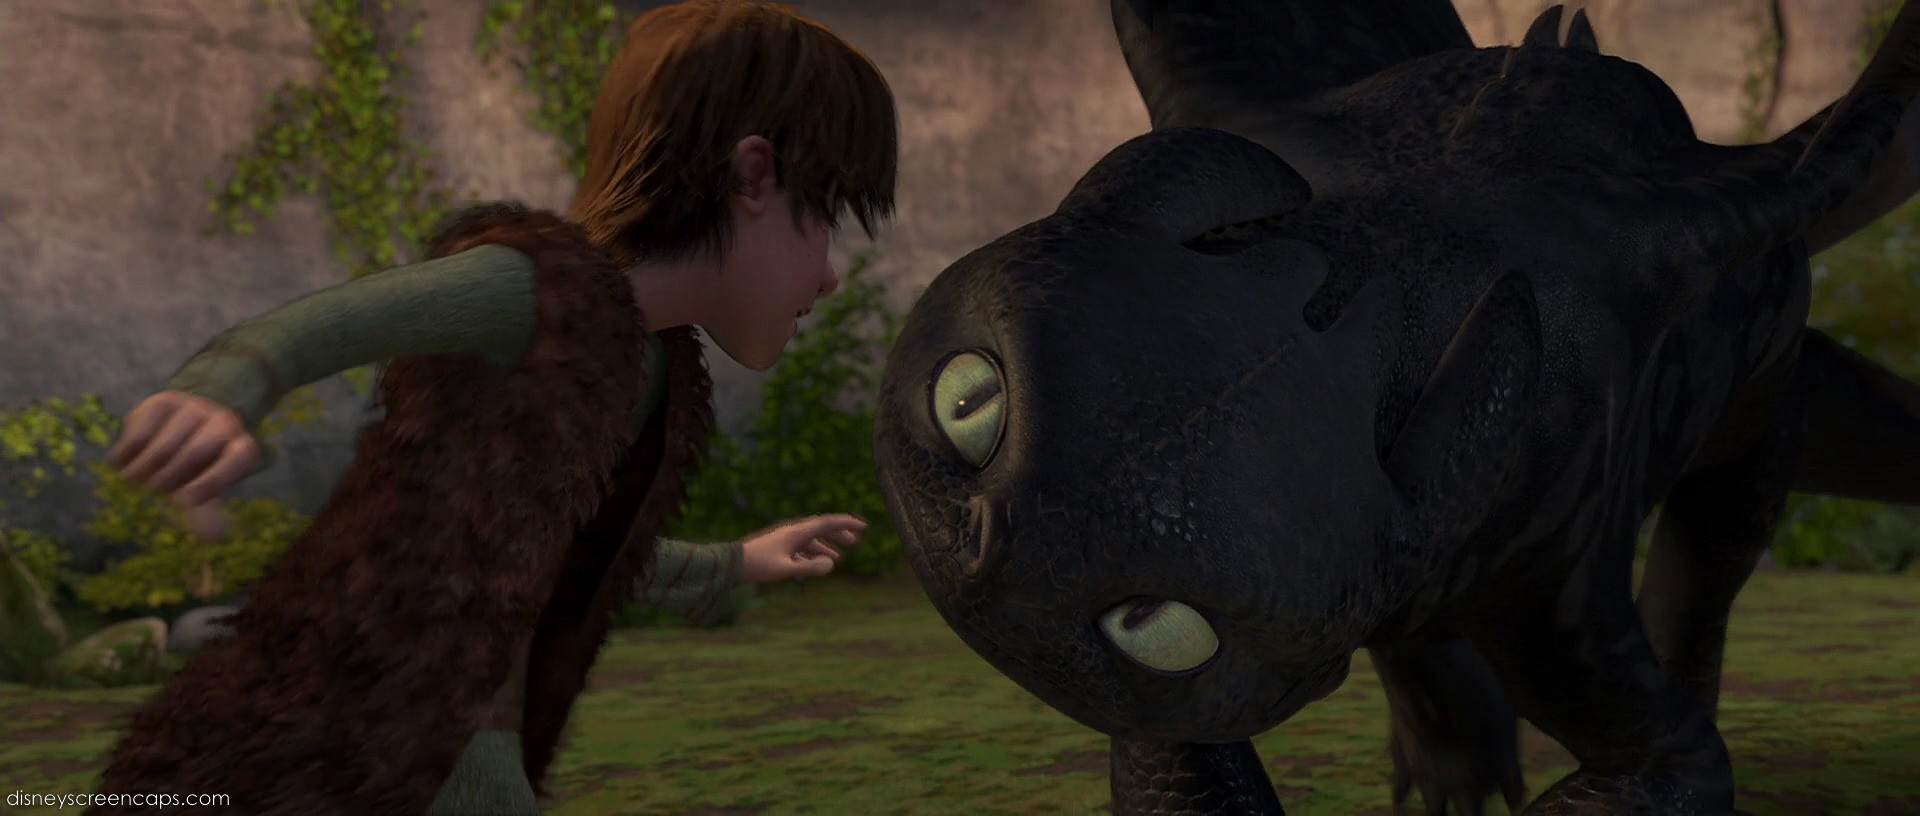 How To Train Your Dragon Screencap  Toothless By Dashiesparkle